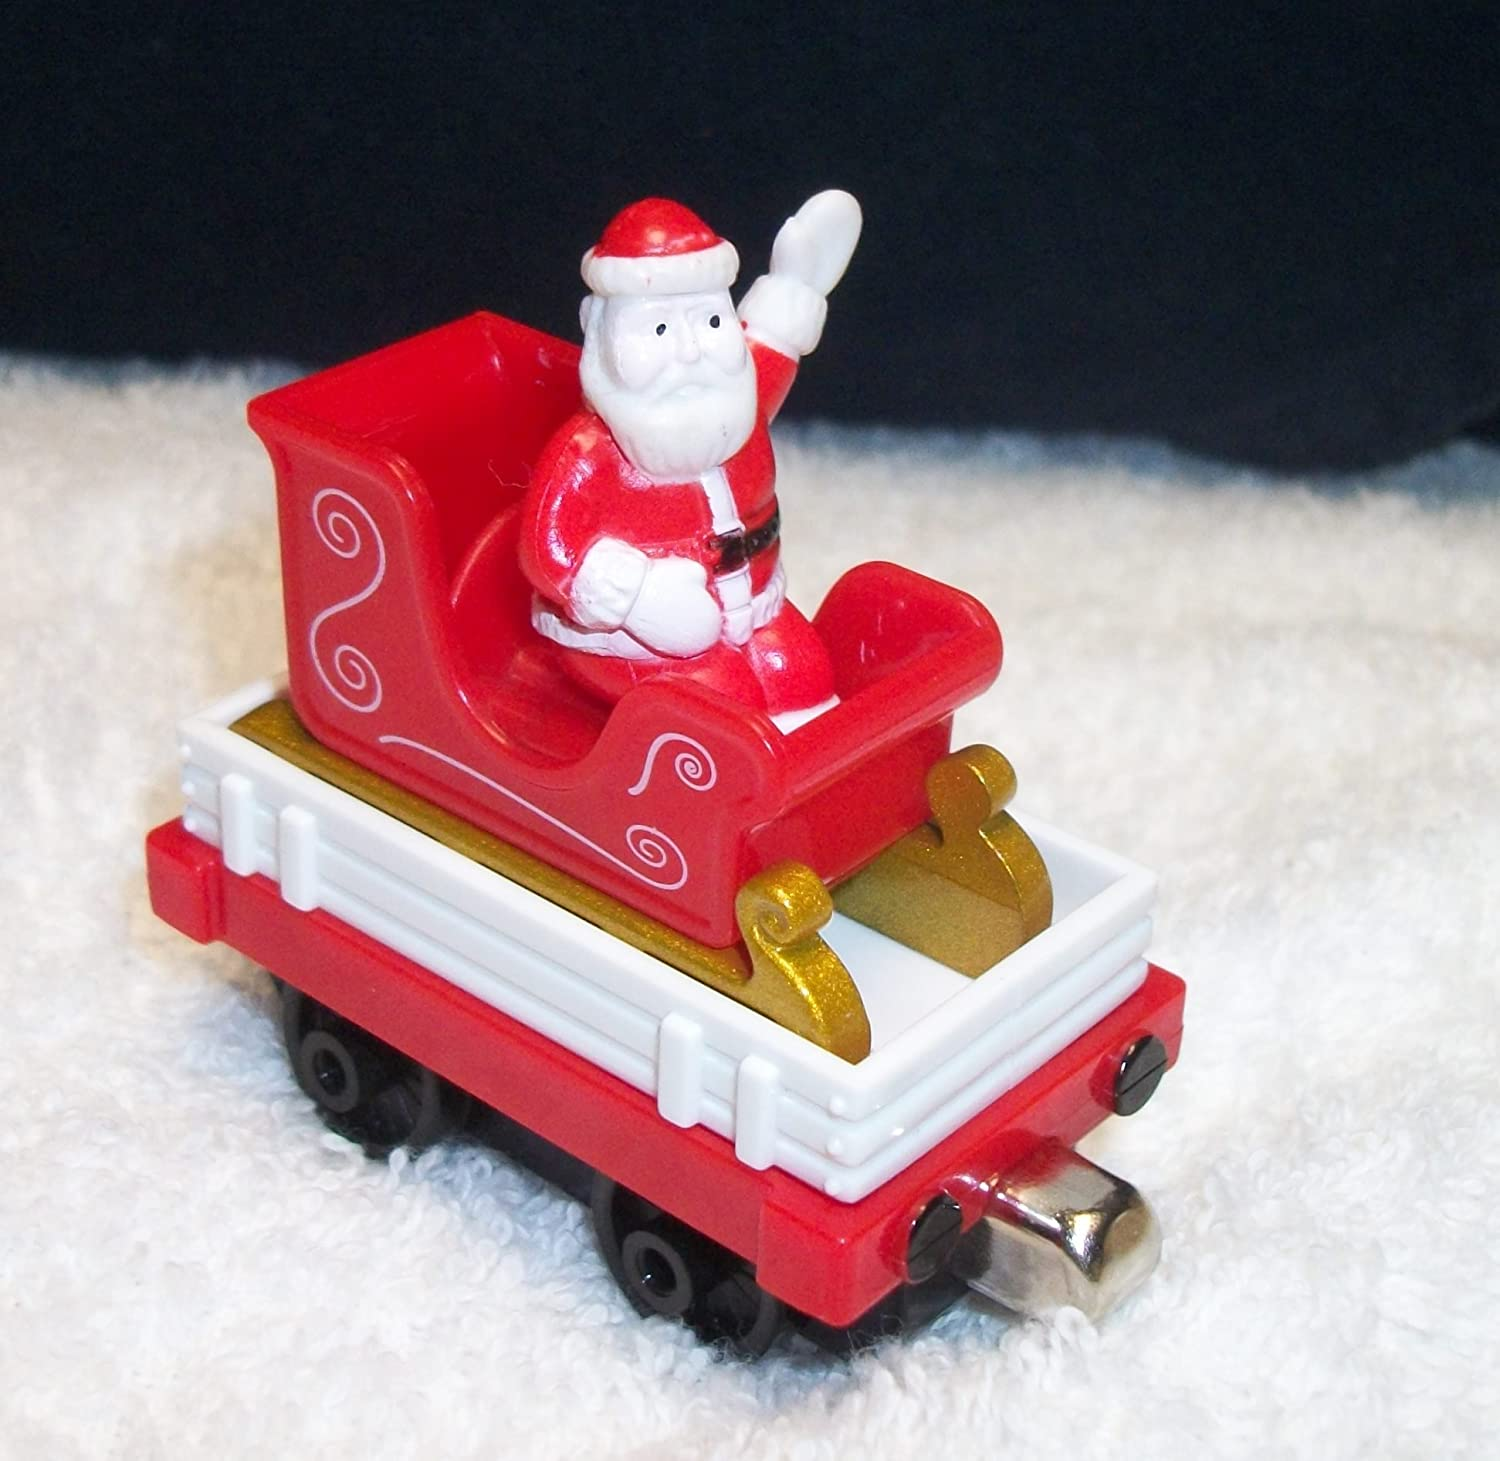 FF Santa Magnetic Metal Train Car(LOOSE) FREE Wooden train with each Purchase of This Santa!